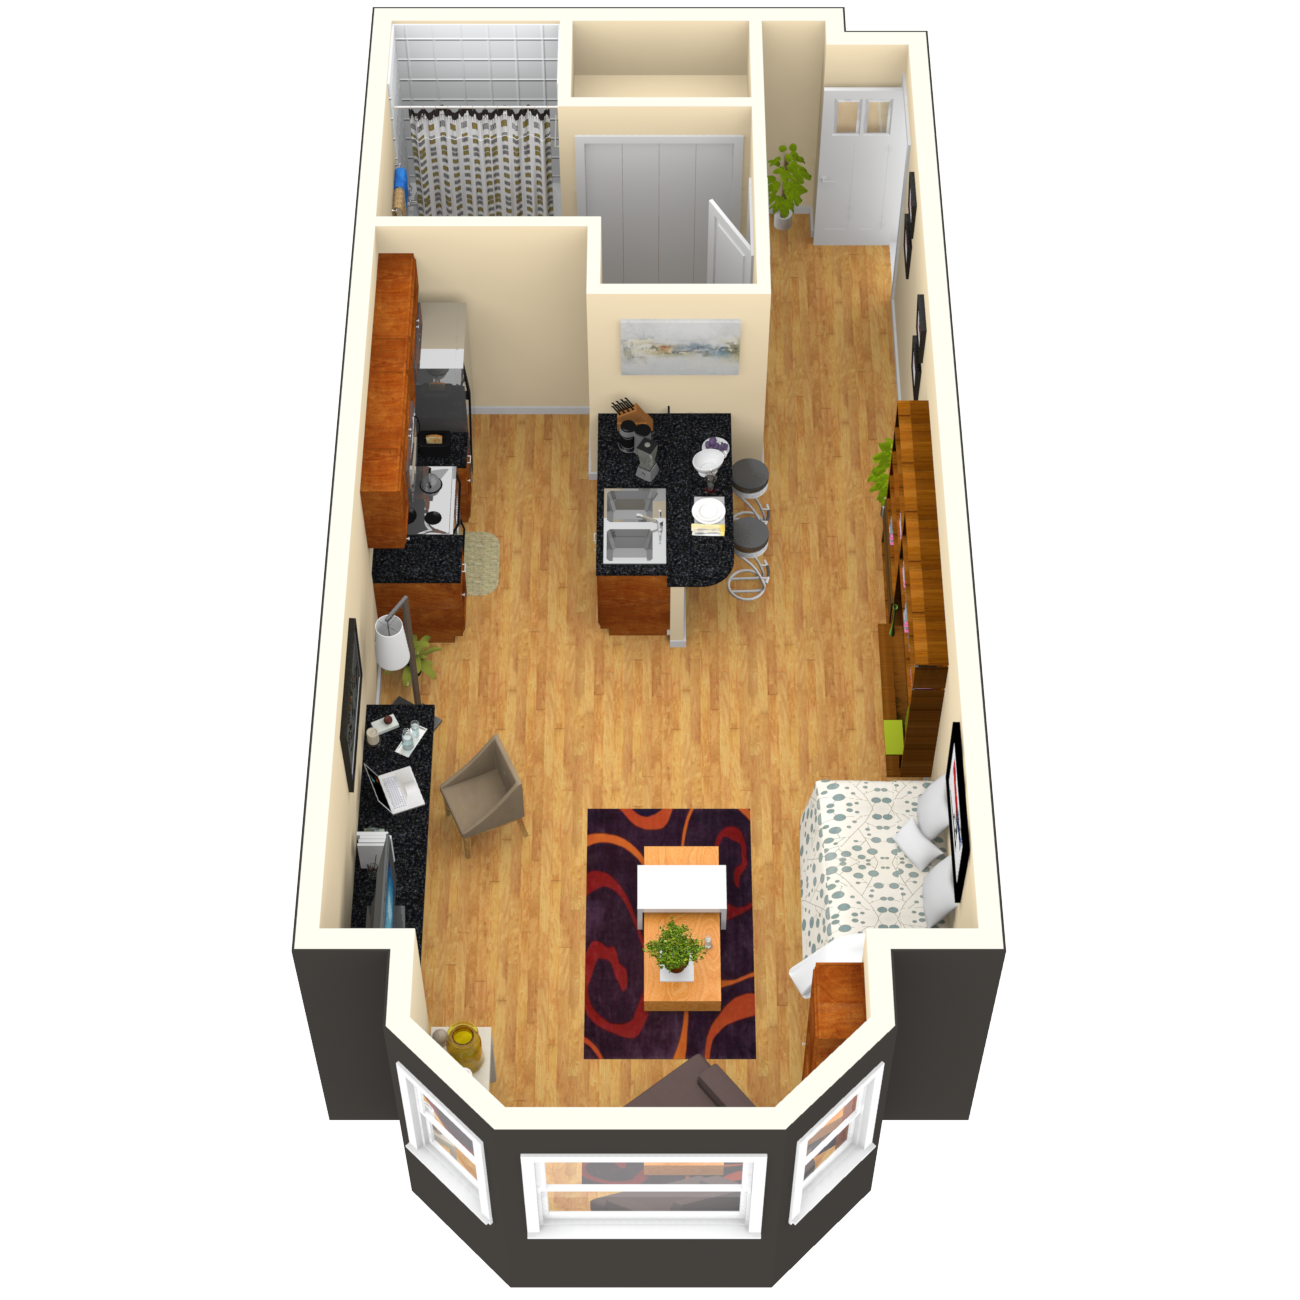 Studio 1 And 2 Bedroom Apartments Townhomes In San Francisco Ca With A Parking Garage Apartment 2 Bedroom Apartment Townhouse